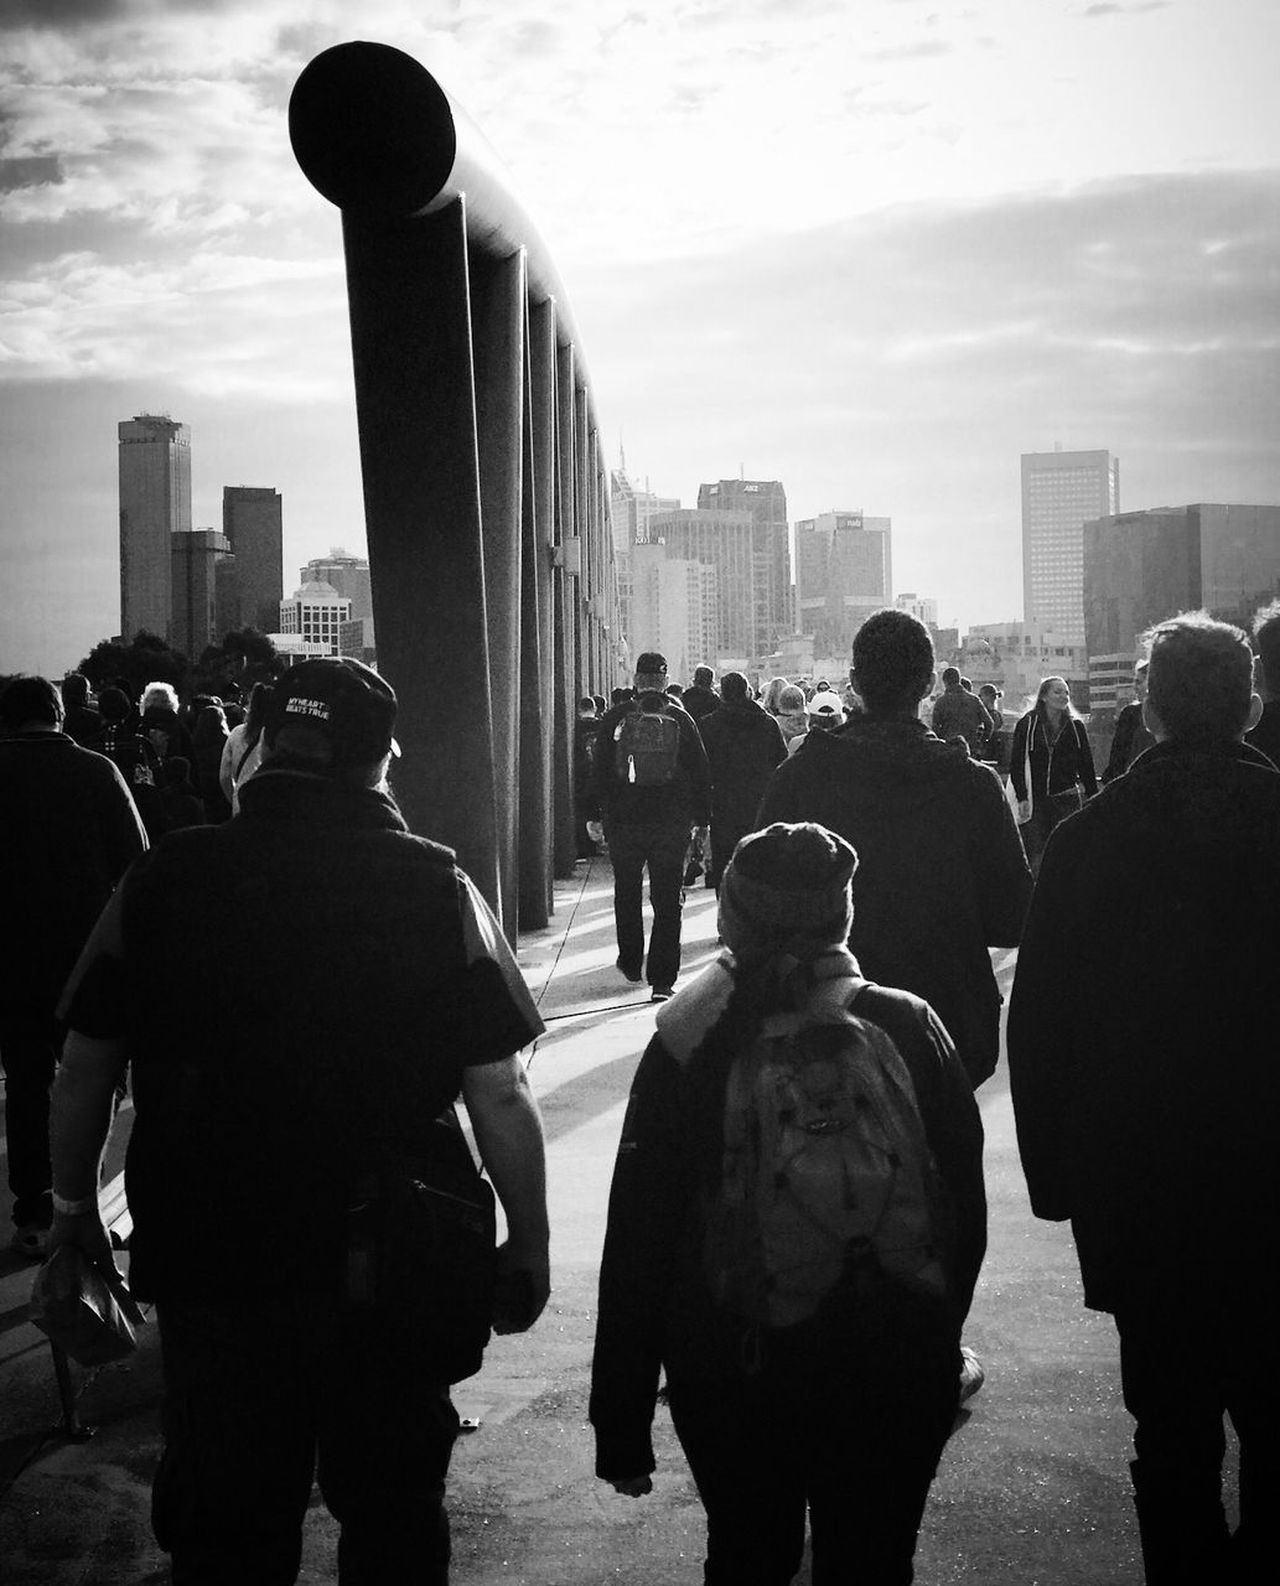 Large Group Of People Skyscraper Rear View Resist Black And White Photography Getty Images Shootermag_australia Street Photography Uniqueness Black And White EyeEm Diversity Resist Long Goodbye The Street Photographer The Street Photographer - 2017 EyeEm Awards The Photojournalist - 2017 EyeEm Awards